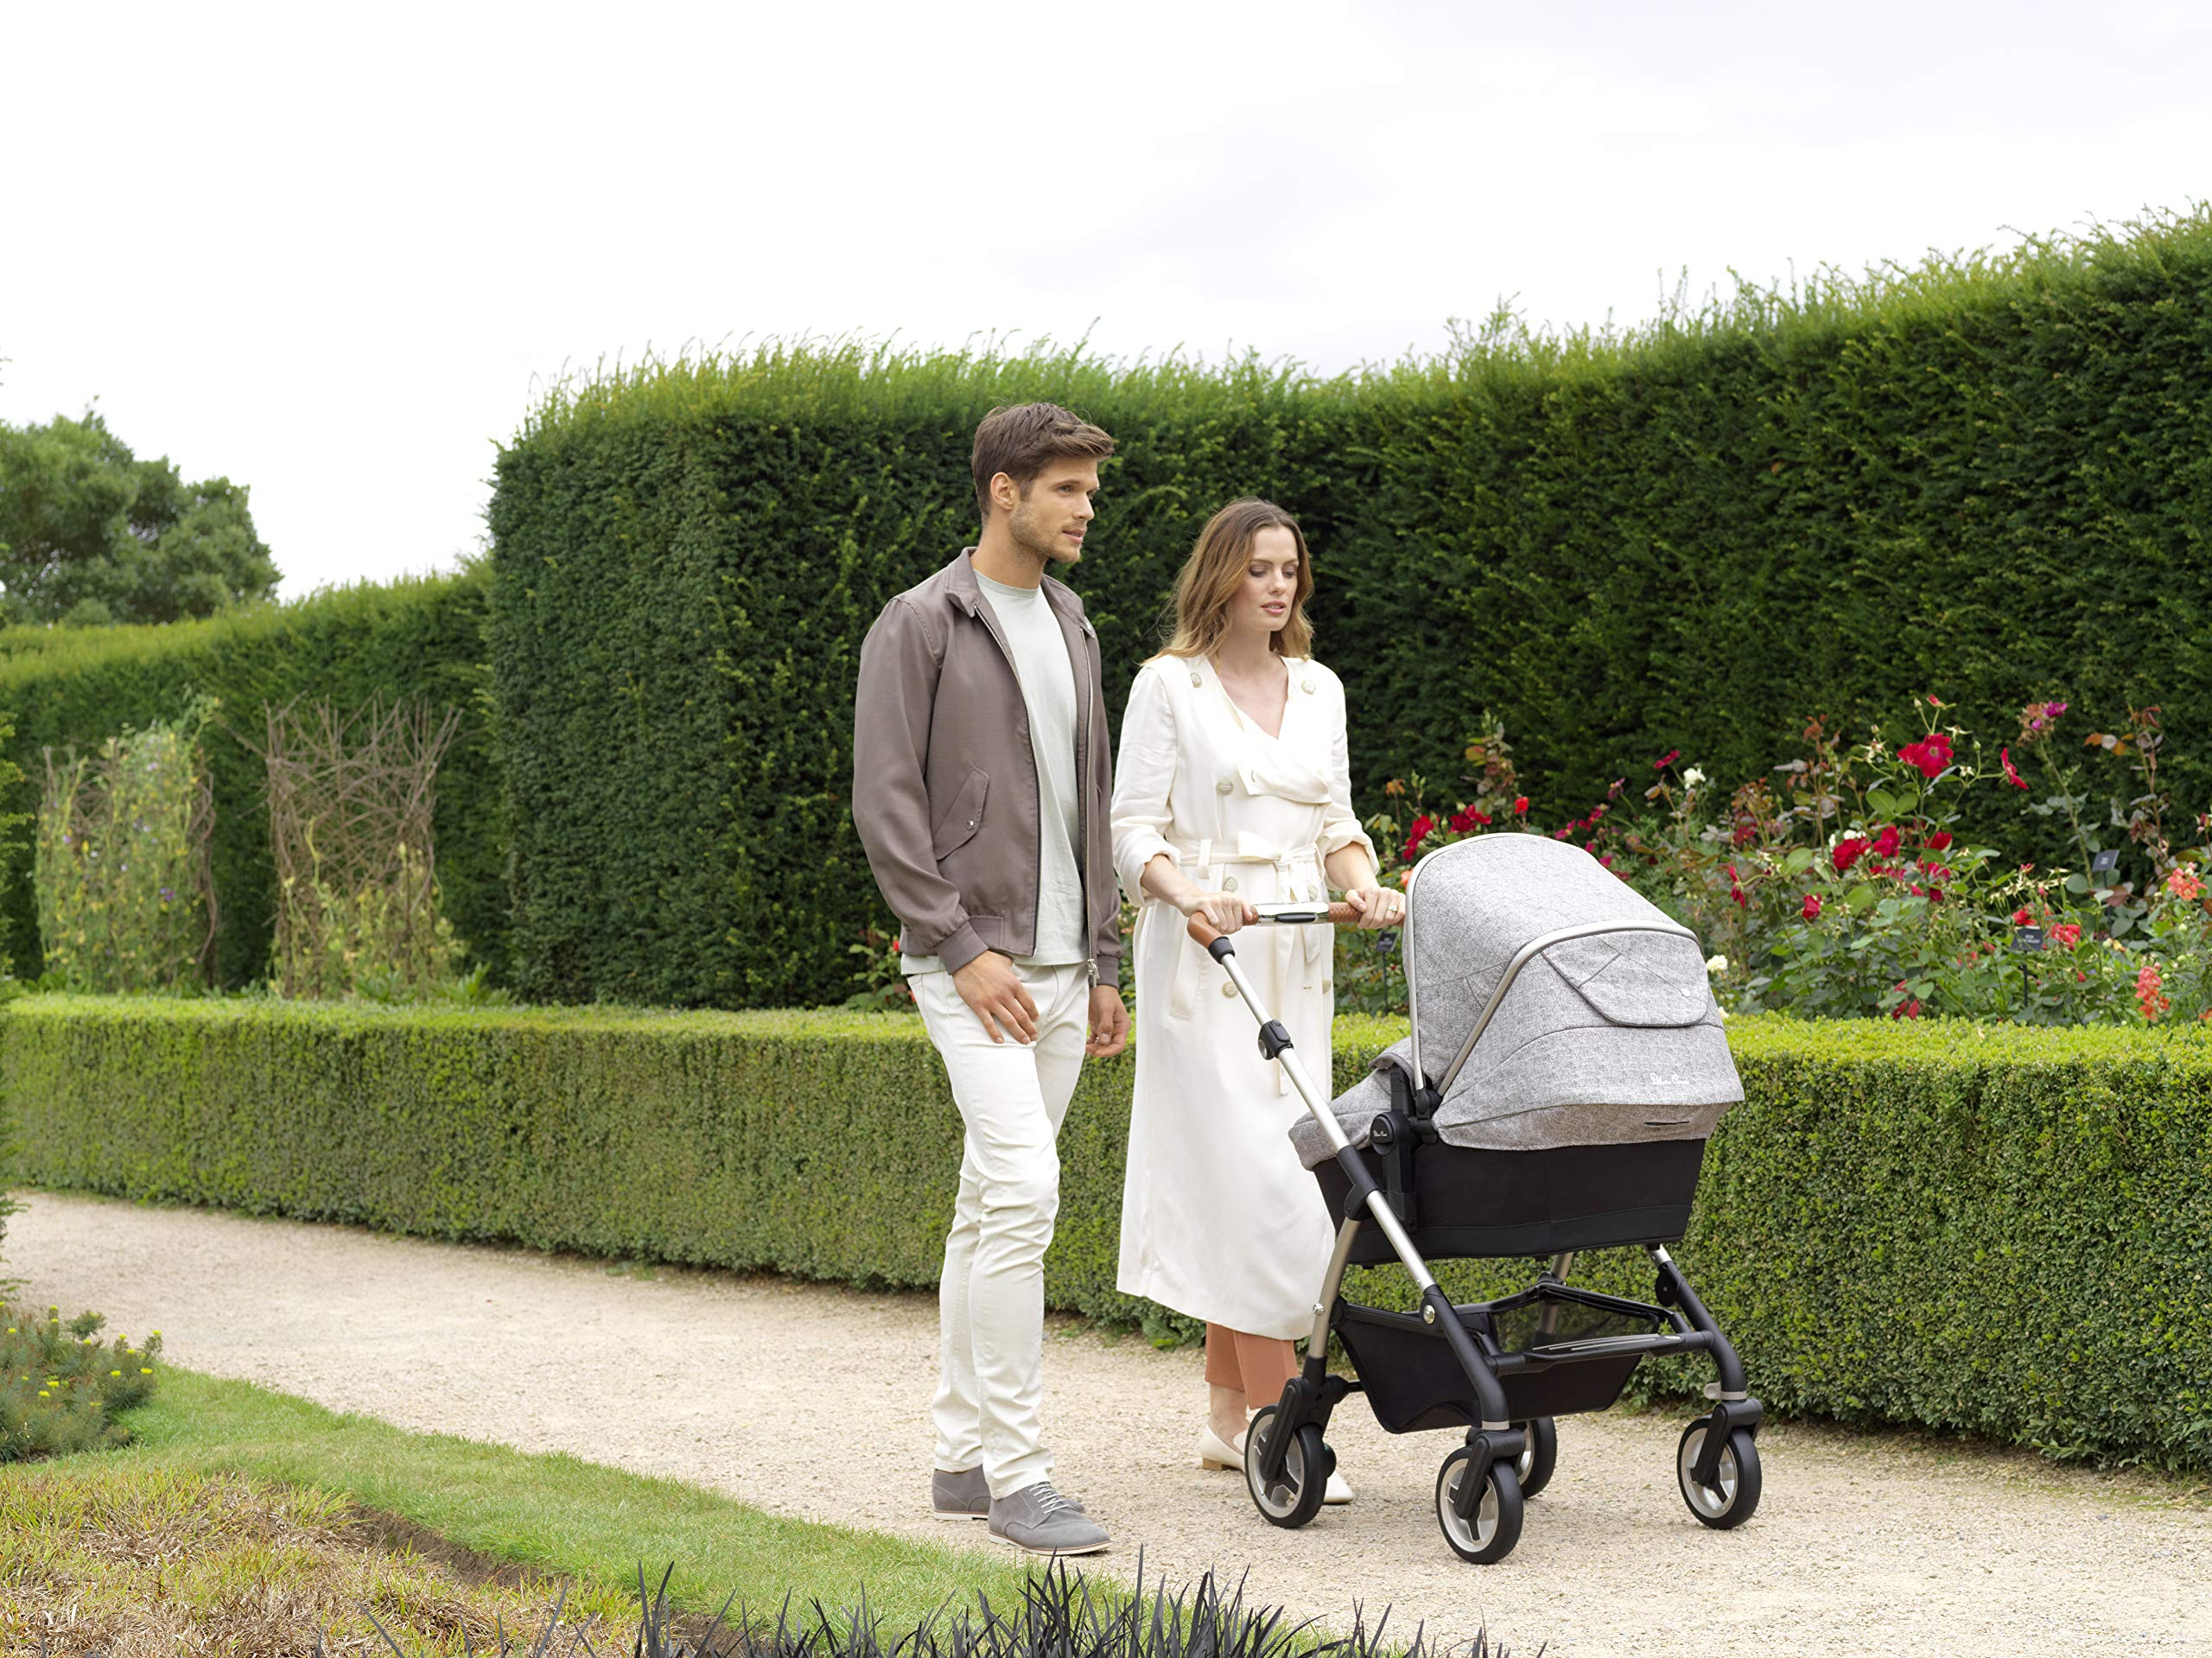 Silver Cross Wayfarer Camden Silver Cross Complete pram system that includes everything you need from birth to toddler Includes a lie-flat carrycot for your new born that is suitable for overnight sleeping Compact, lightweight and convenient, hardwearing and durable 8